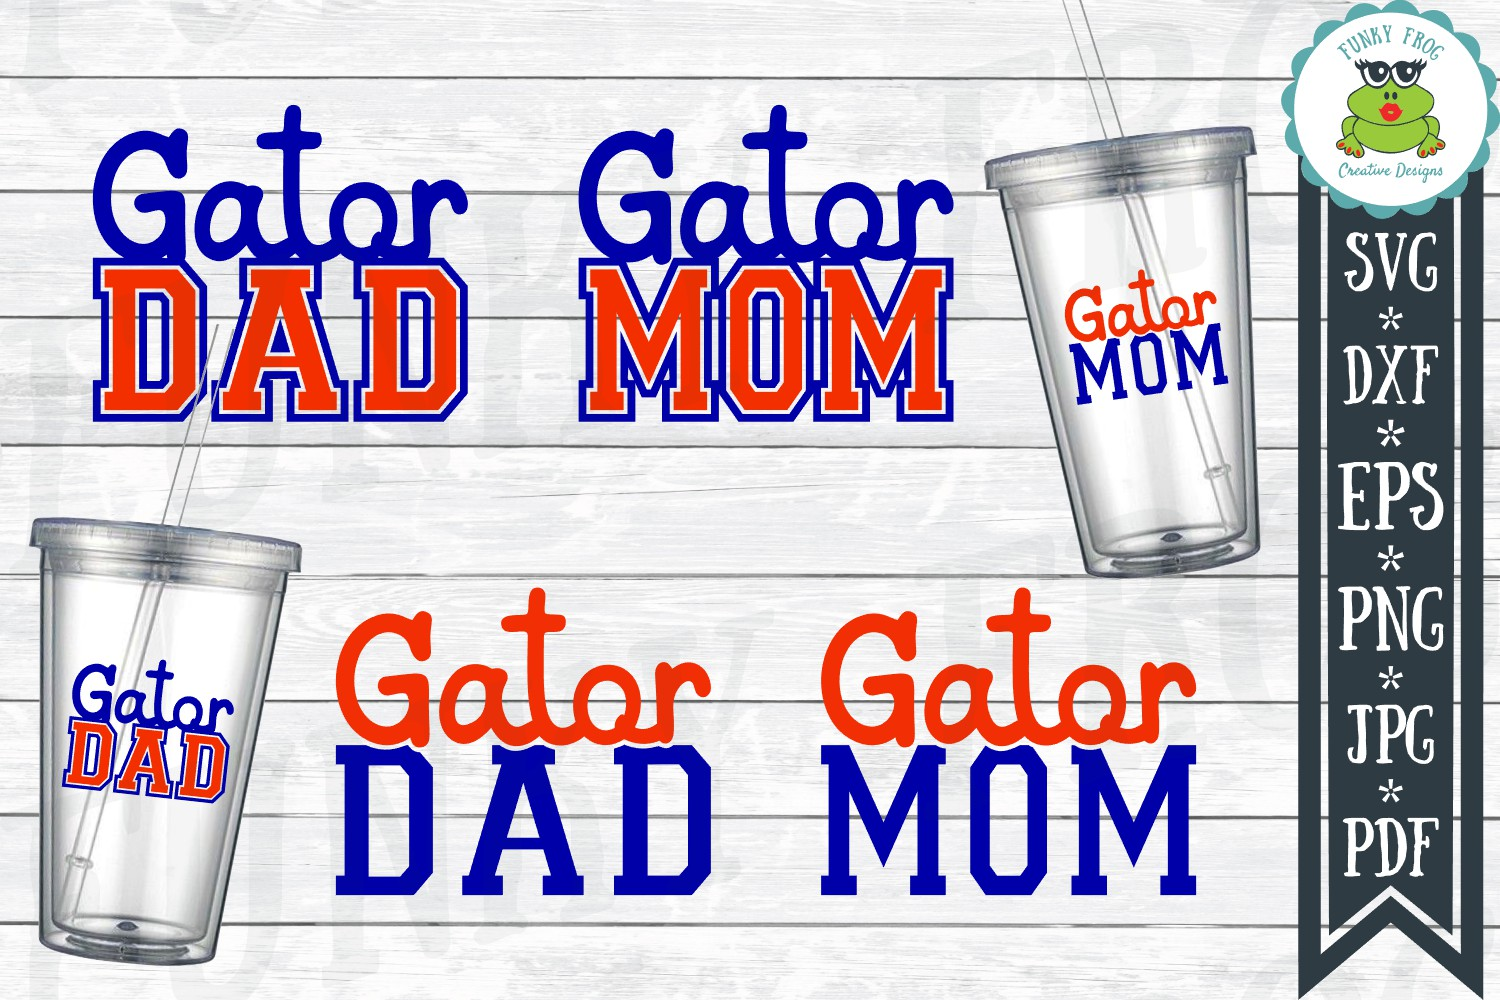 Gator Mom And Gator Dad Graphic By Funkyfrogcreativedesigns